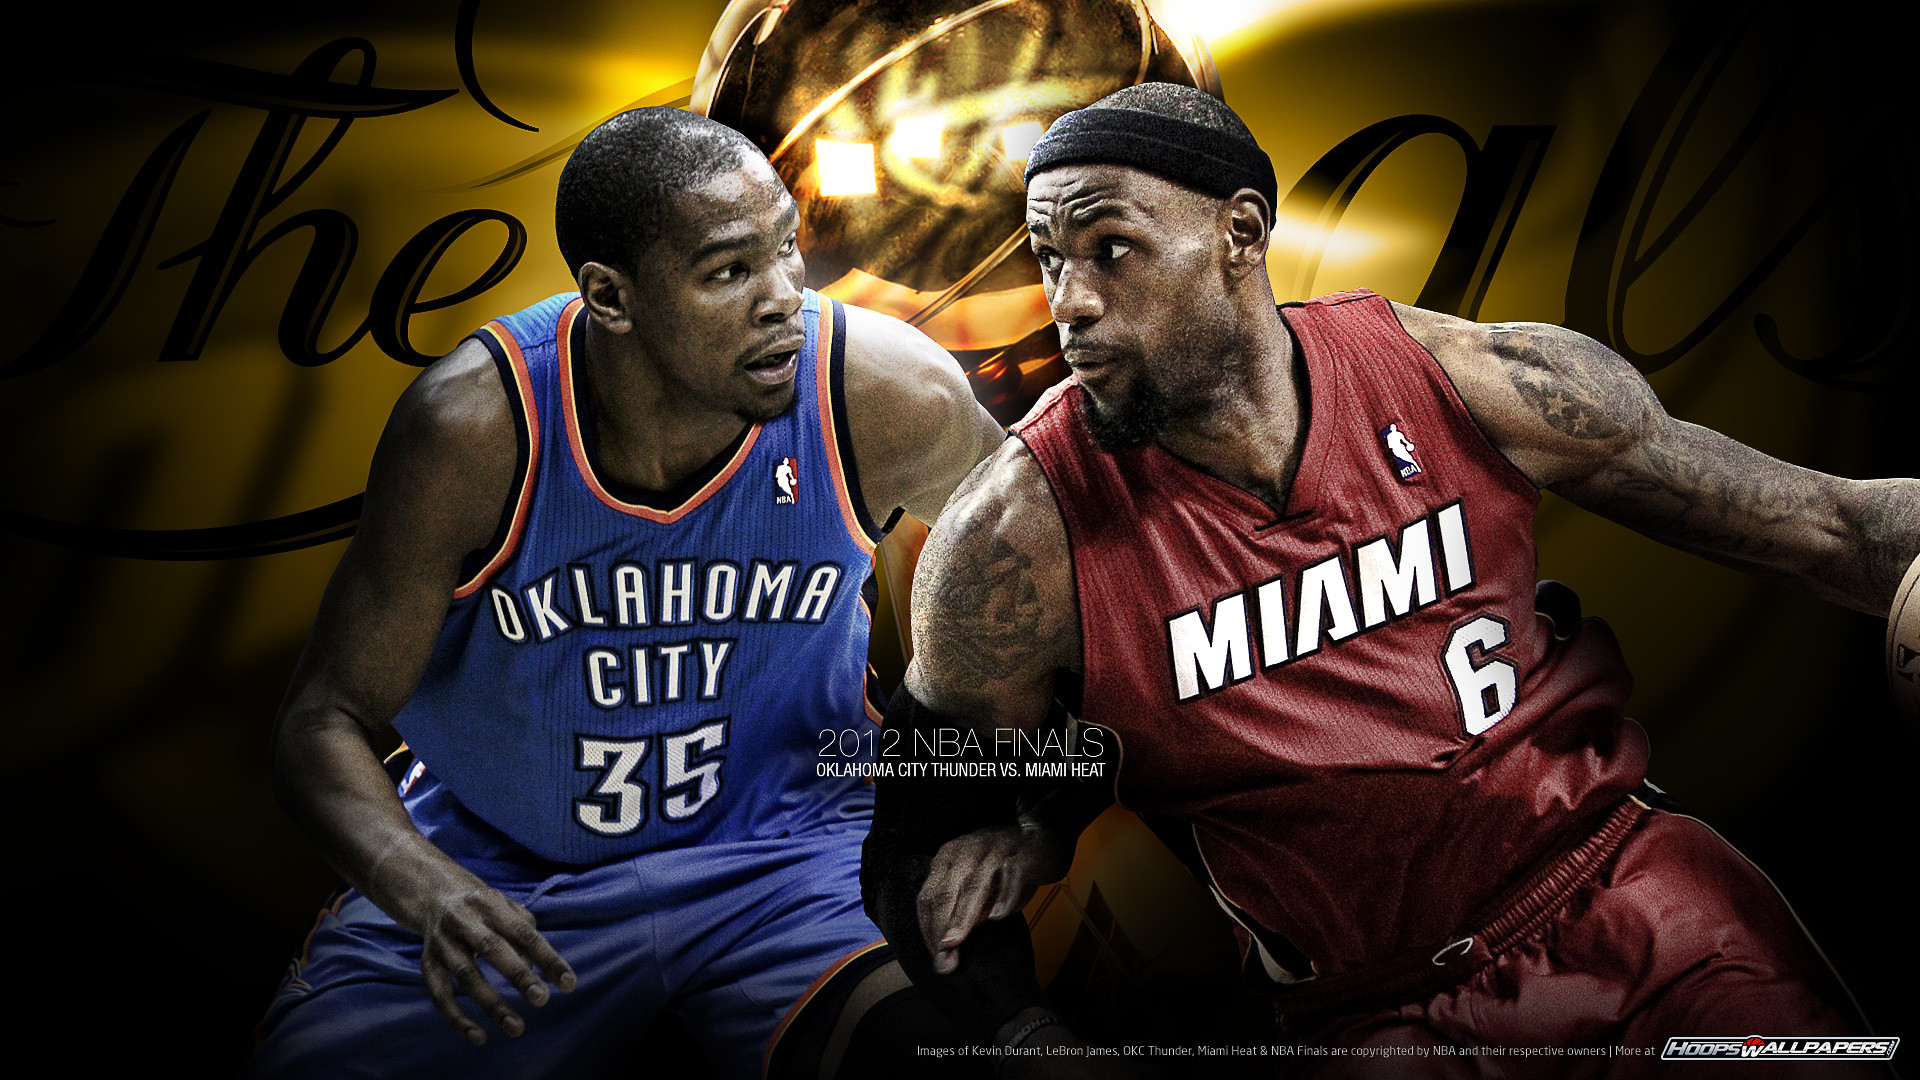 1920x1080 NBA Finals Picture - LeBron James and Kevin Durant, Heat and Thunder, Who is